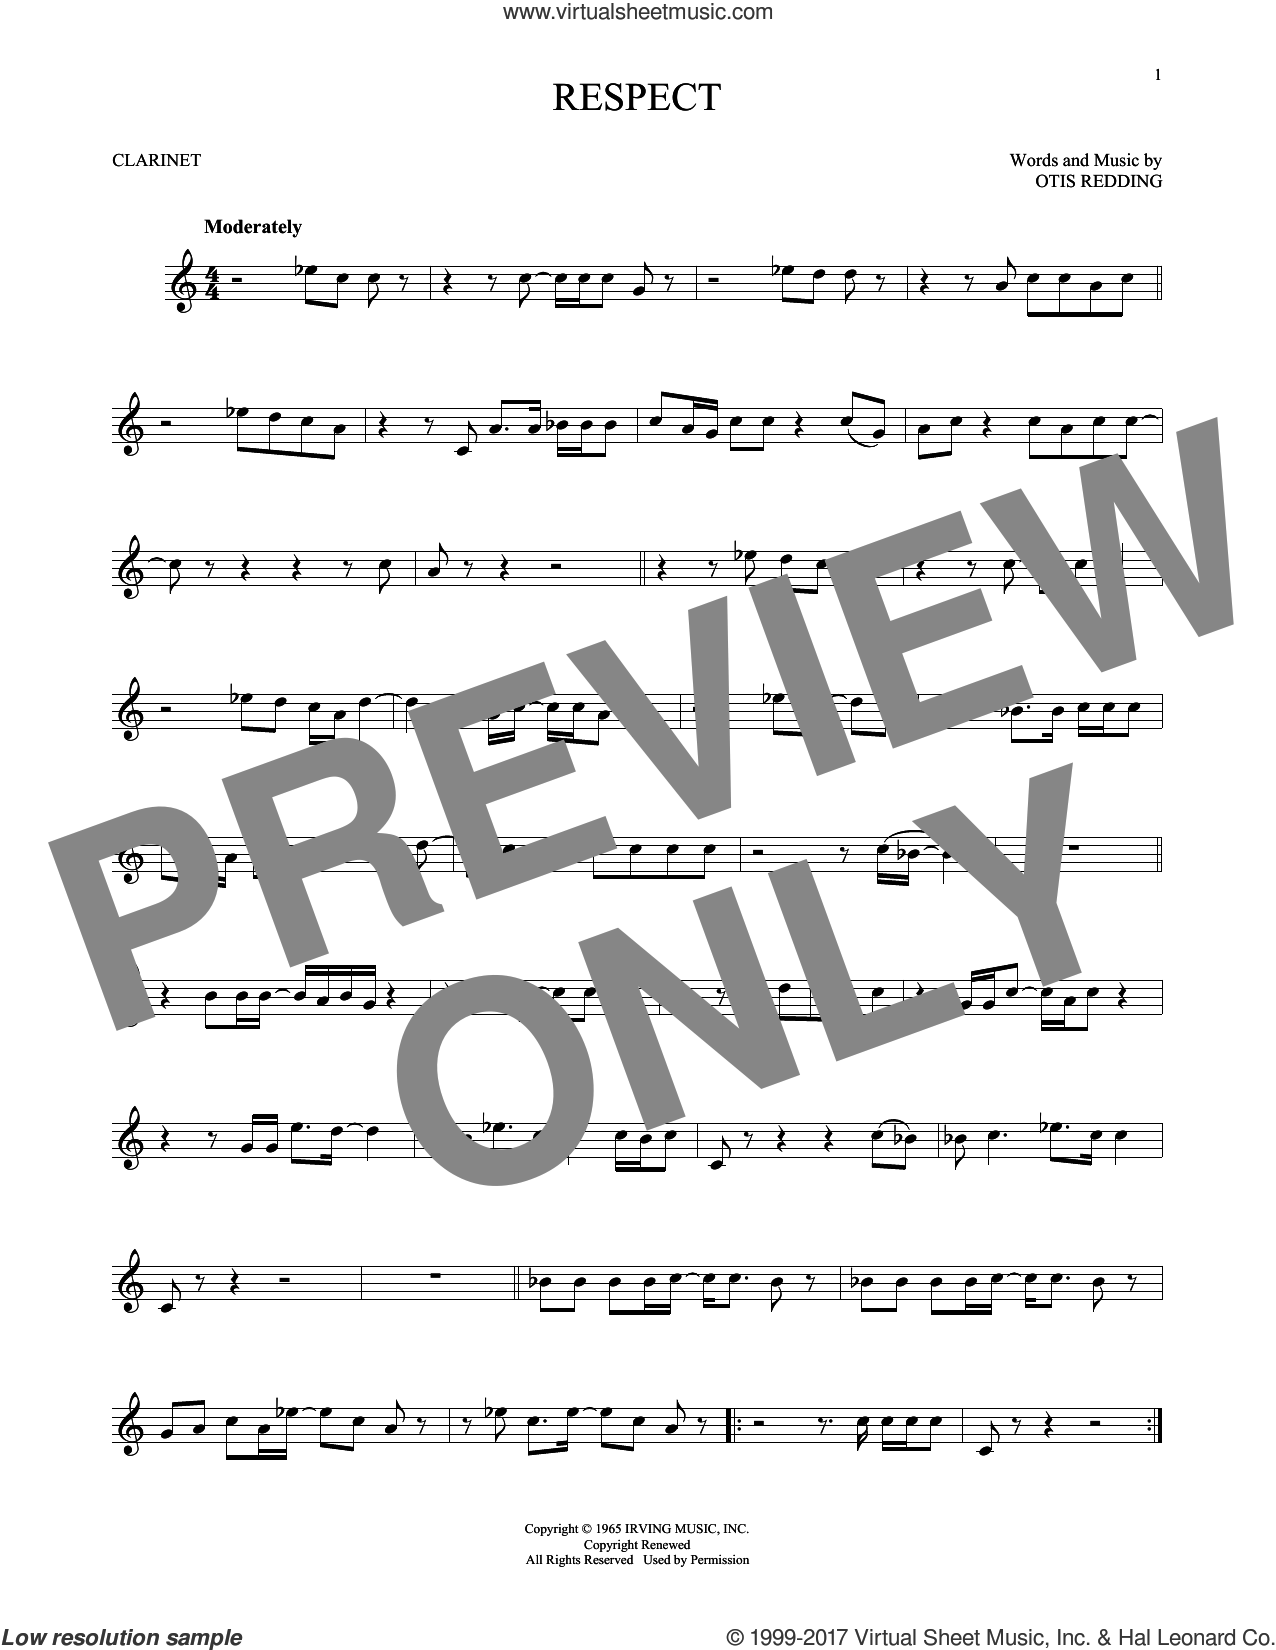 Respect sheet music for clarinet solo by Aretha Franklin and Otis Redding, intermediate skill level